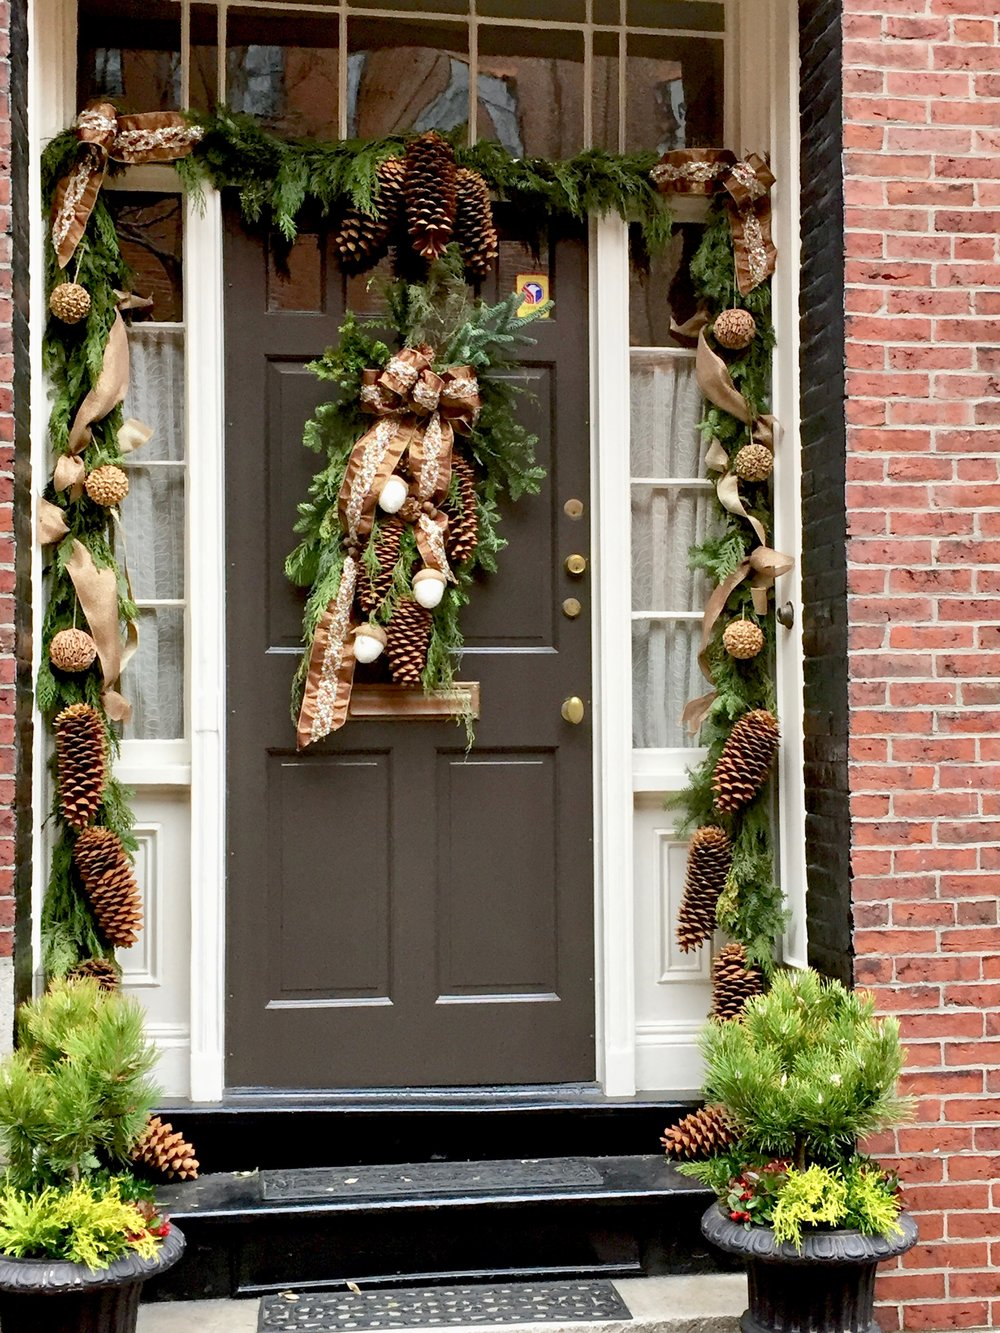 Pinecone Christmas Front Door Beacon Hill Boston MA New England.jpg